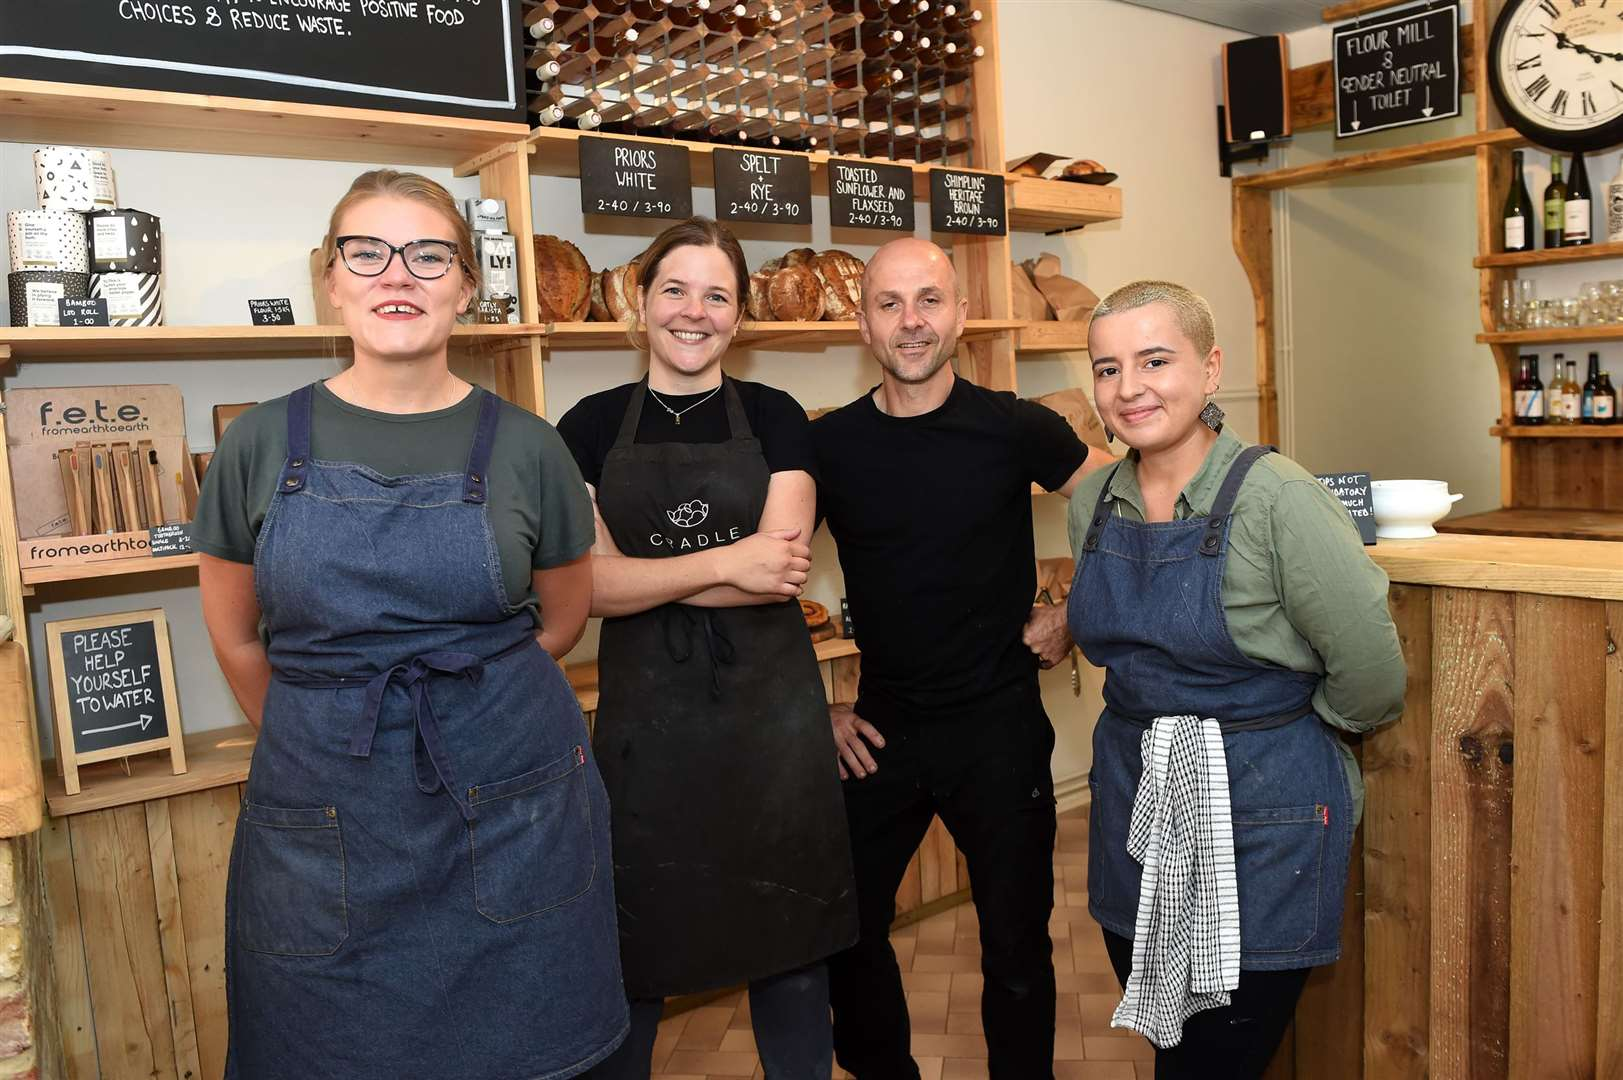 Cradle cafe in North Street, Sudbury provides plant-based dishes and pastries. The business prides itself on producing food from plant-based products, which are ethically sourced and boosts biodiversity...Pictured: Bethany Buck, Holly Sutton, Christophe Vigil and Gabriella Vasquez-Walters...PICTURE: Mecha Morton ... (15399496)